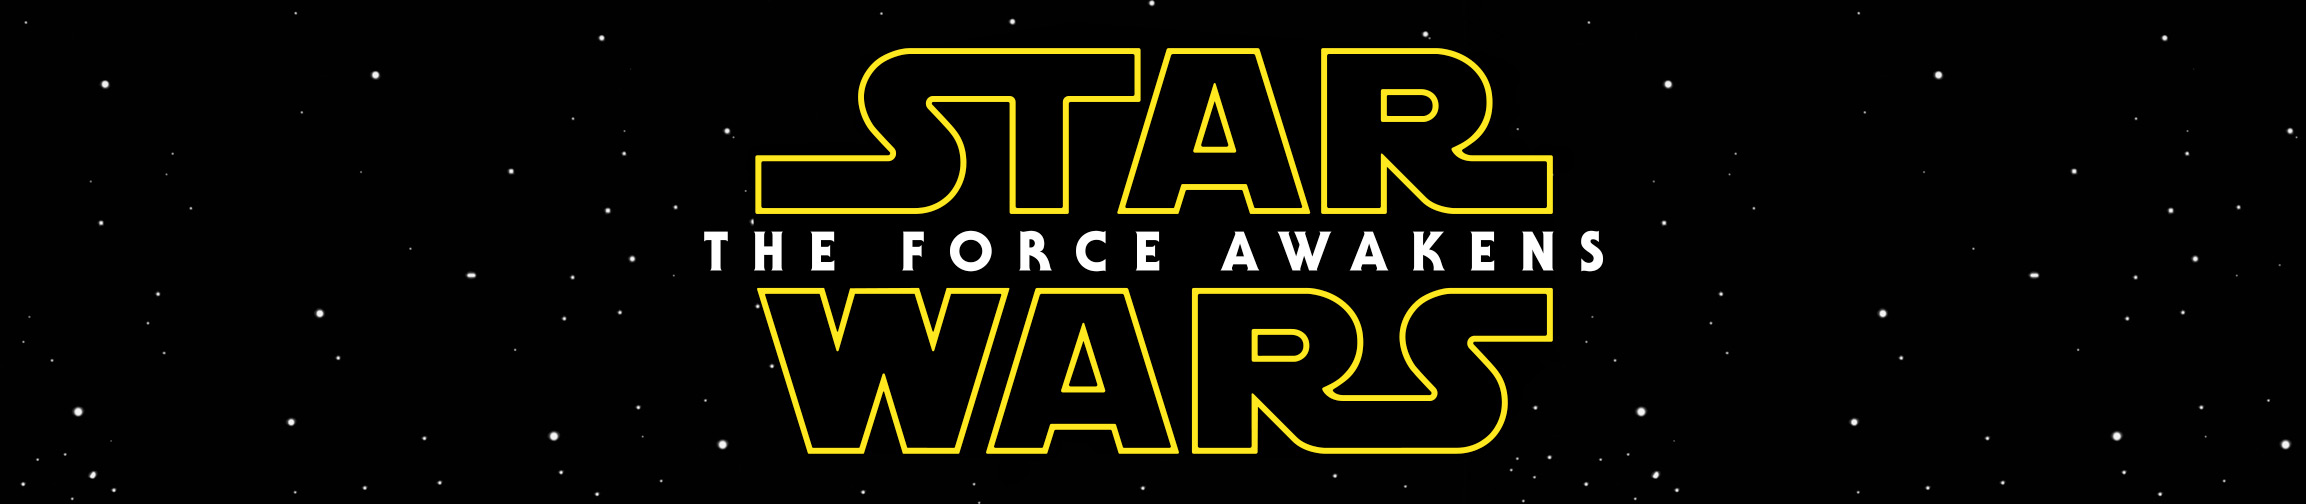 Report: Star Wars Episode VII: The Force Awakens teaser trailer comes this week (update)